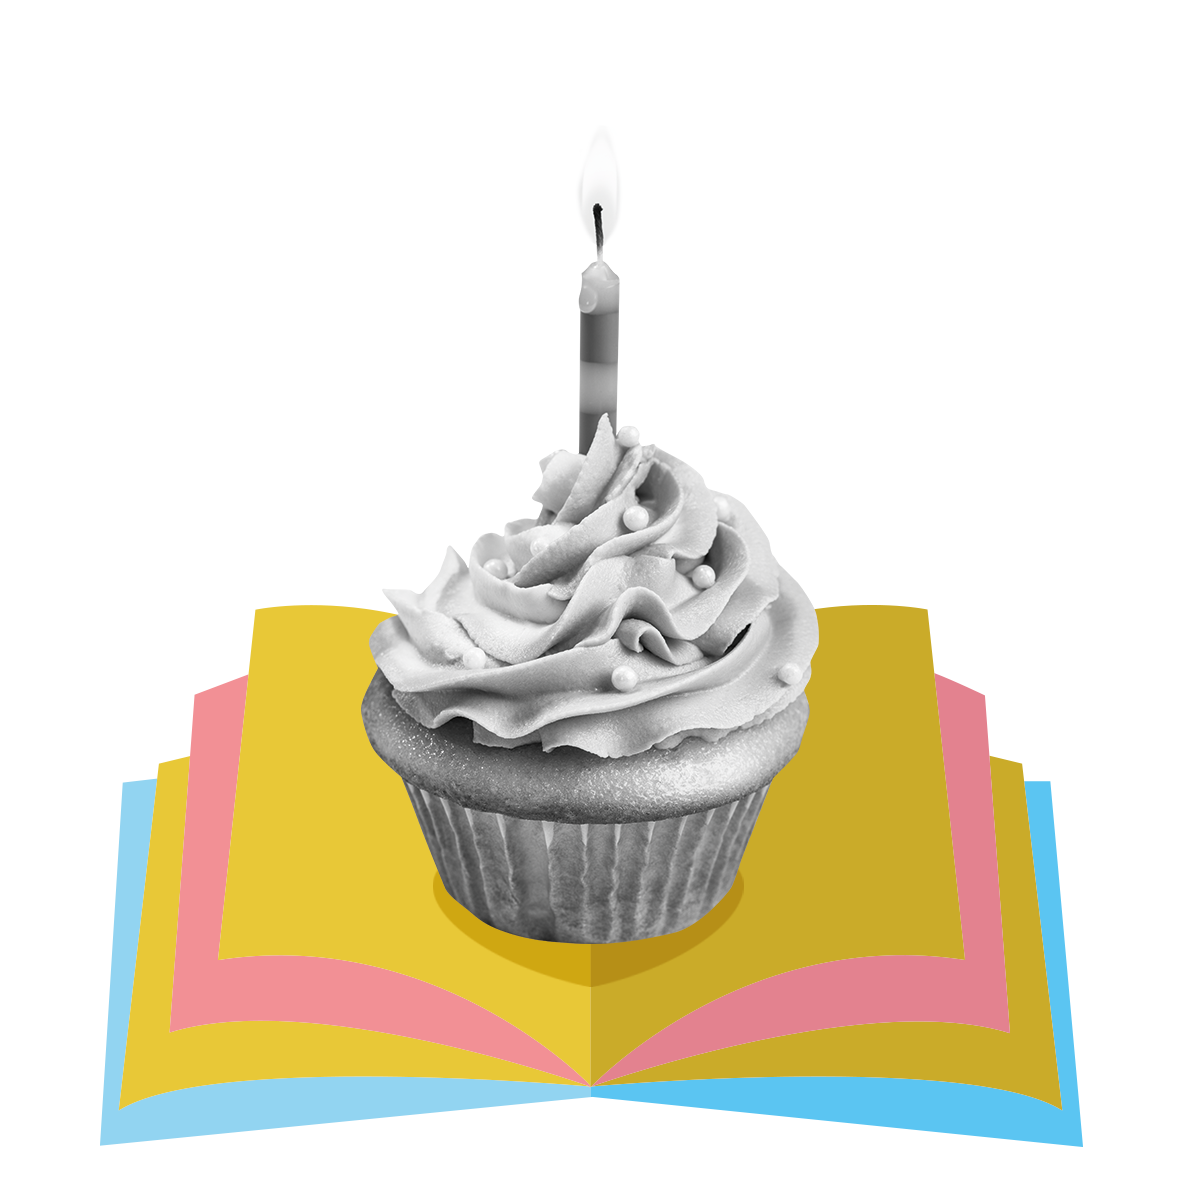 Birthday cake upon an open book